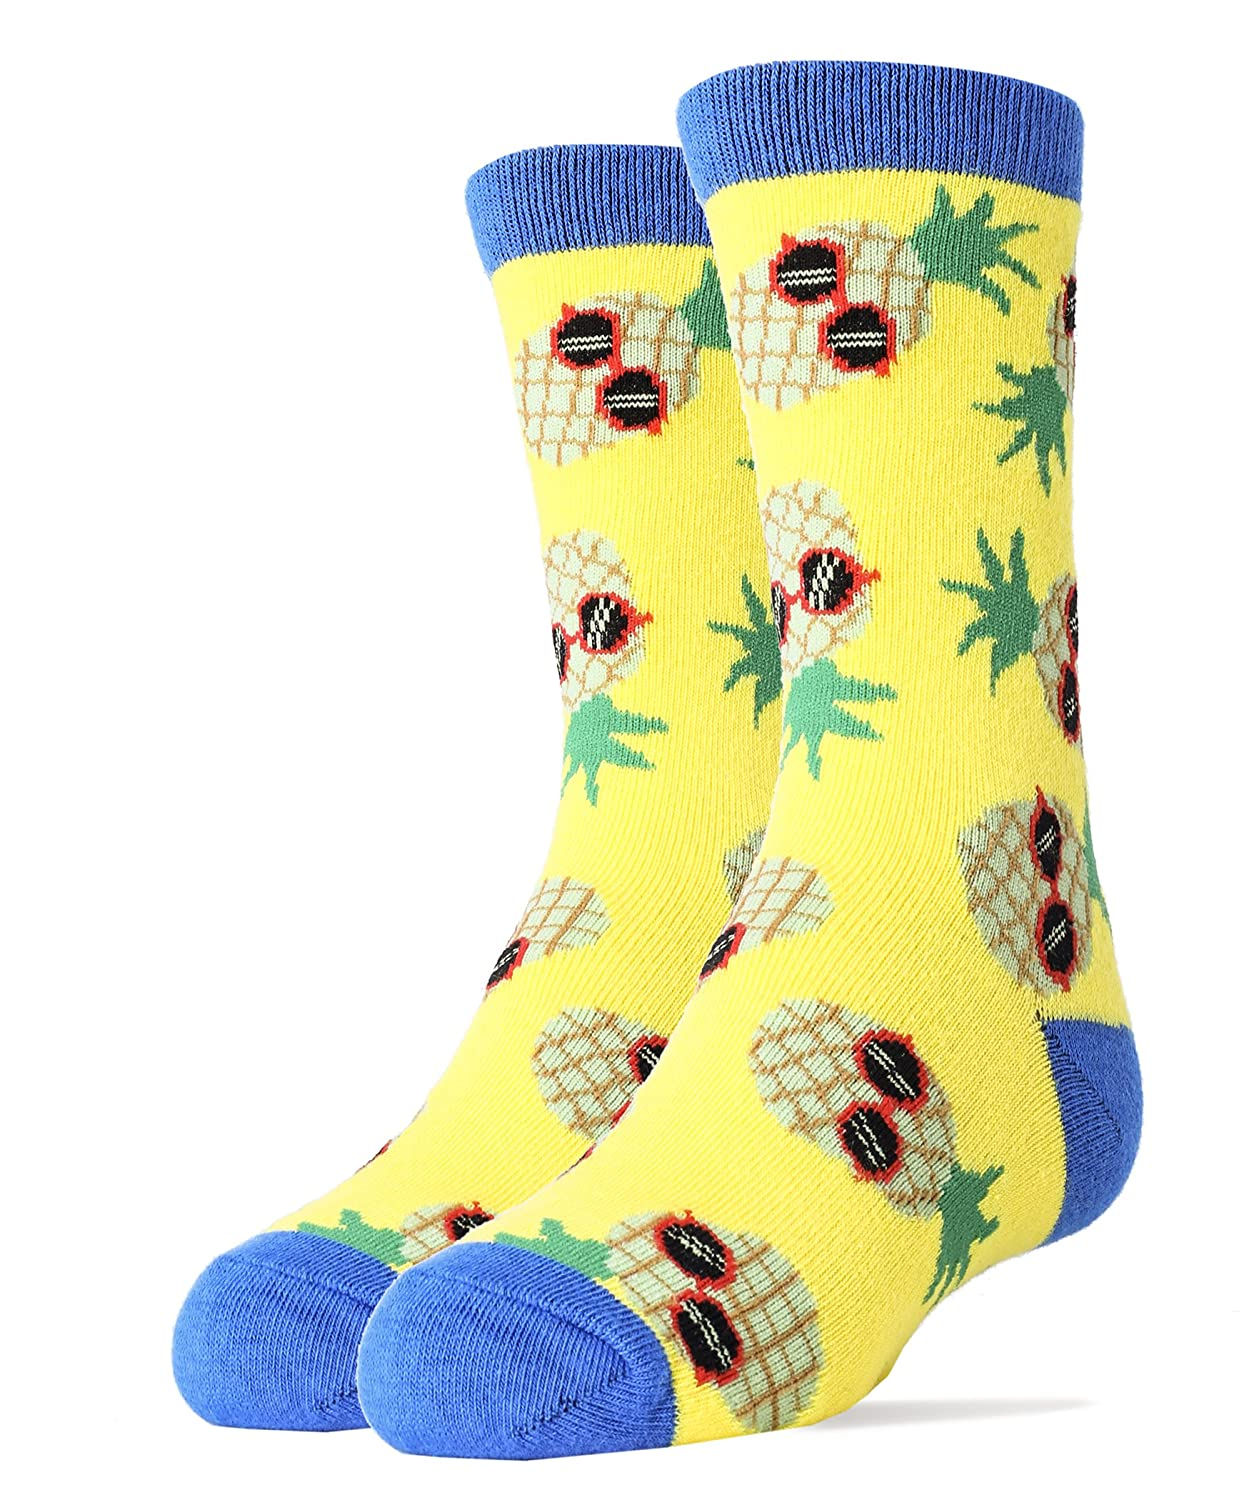 Oooh Yeah Youth Kids Crazy Funny Novertly Crew Socks